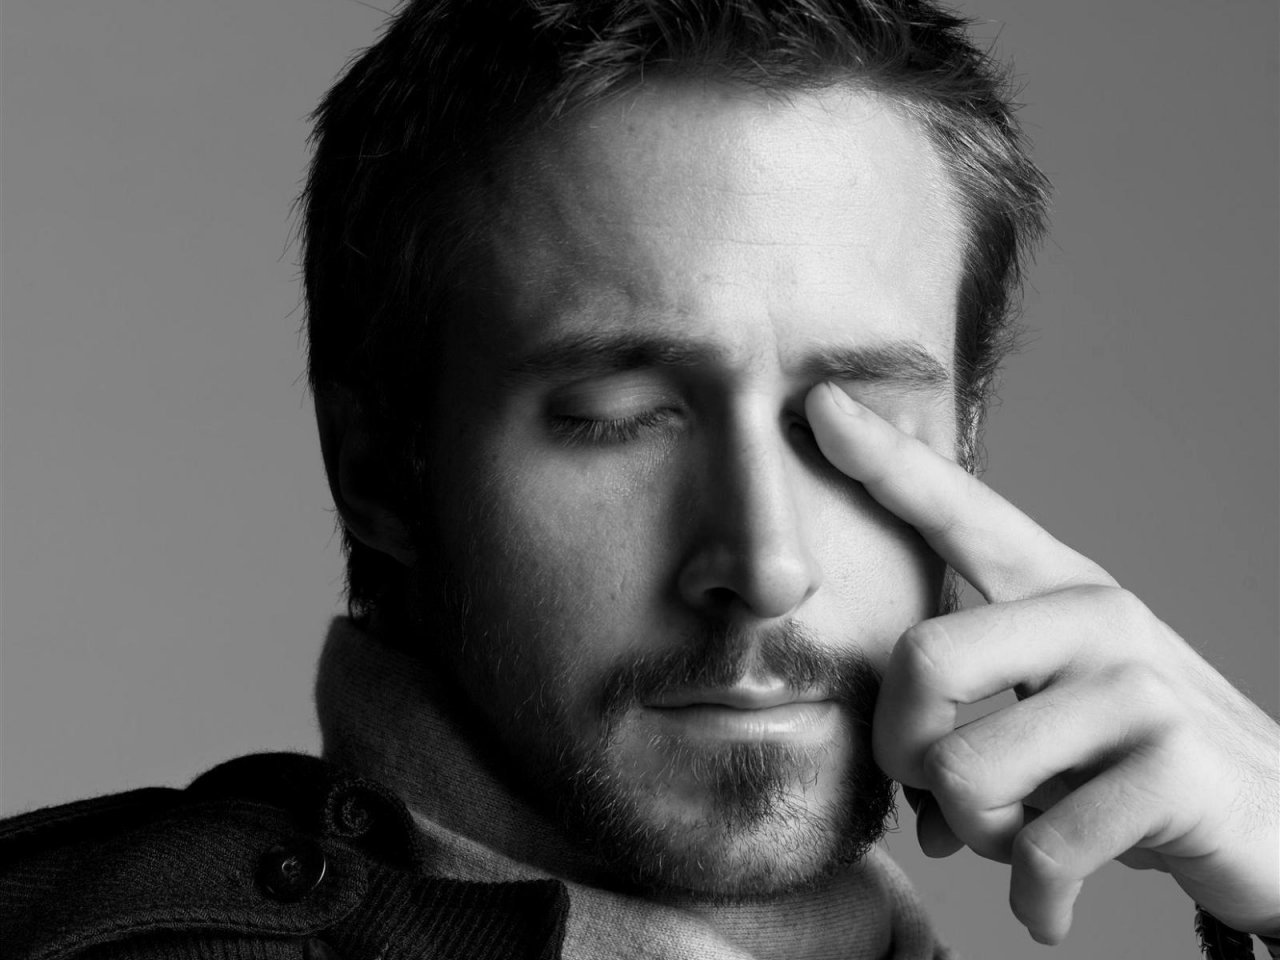 Ryan Gosling Face wallpapers Picture 6359